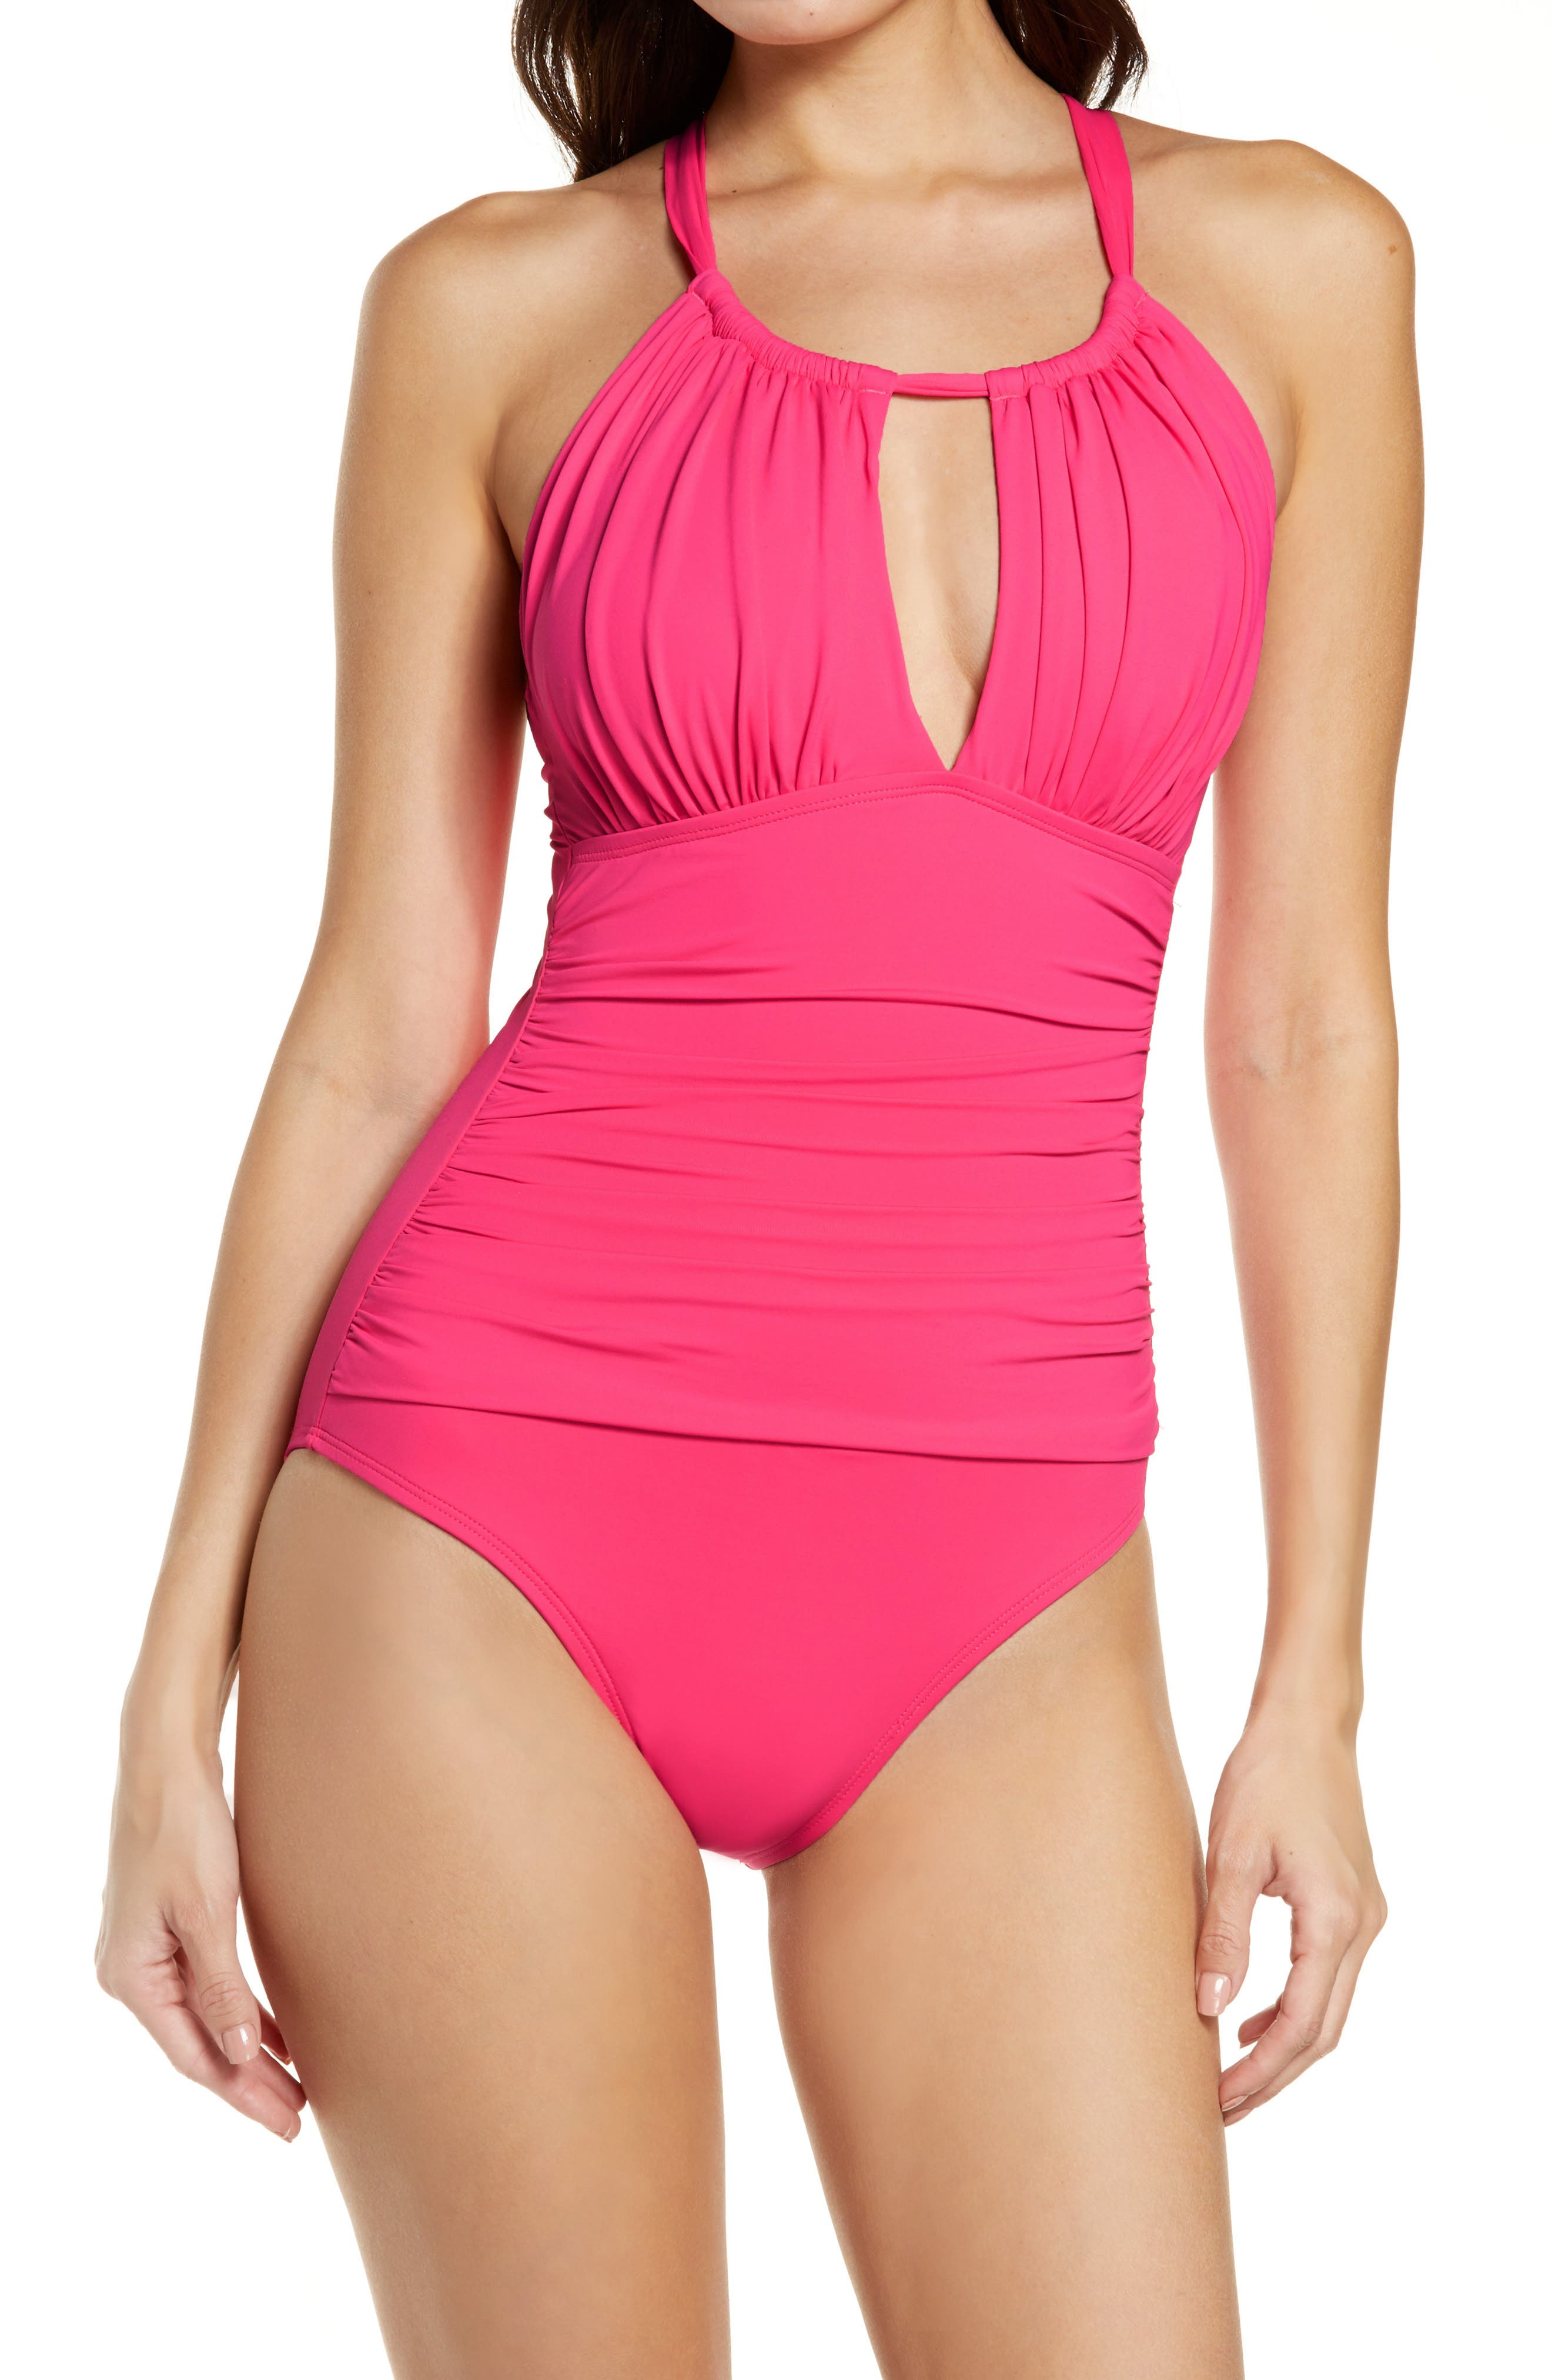 Reef Womens Vintage Vibes High Neck One Piece Swimsuit